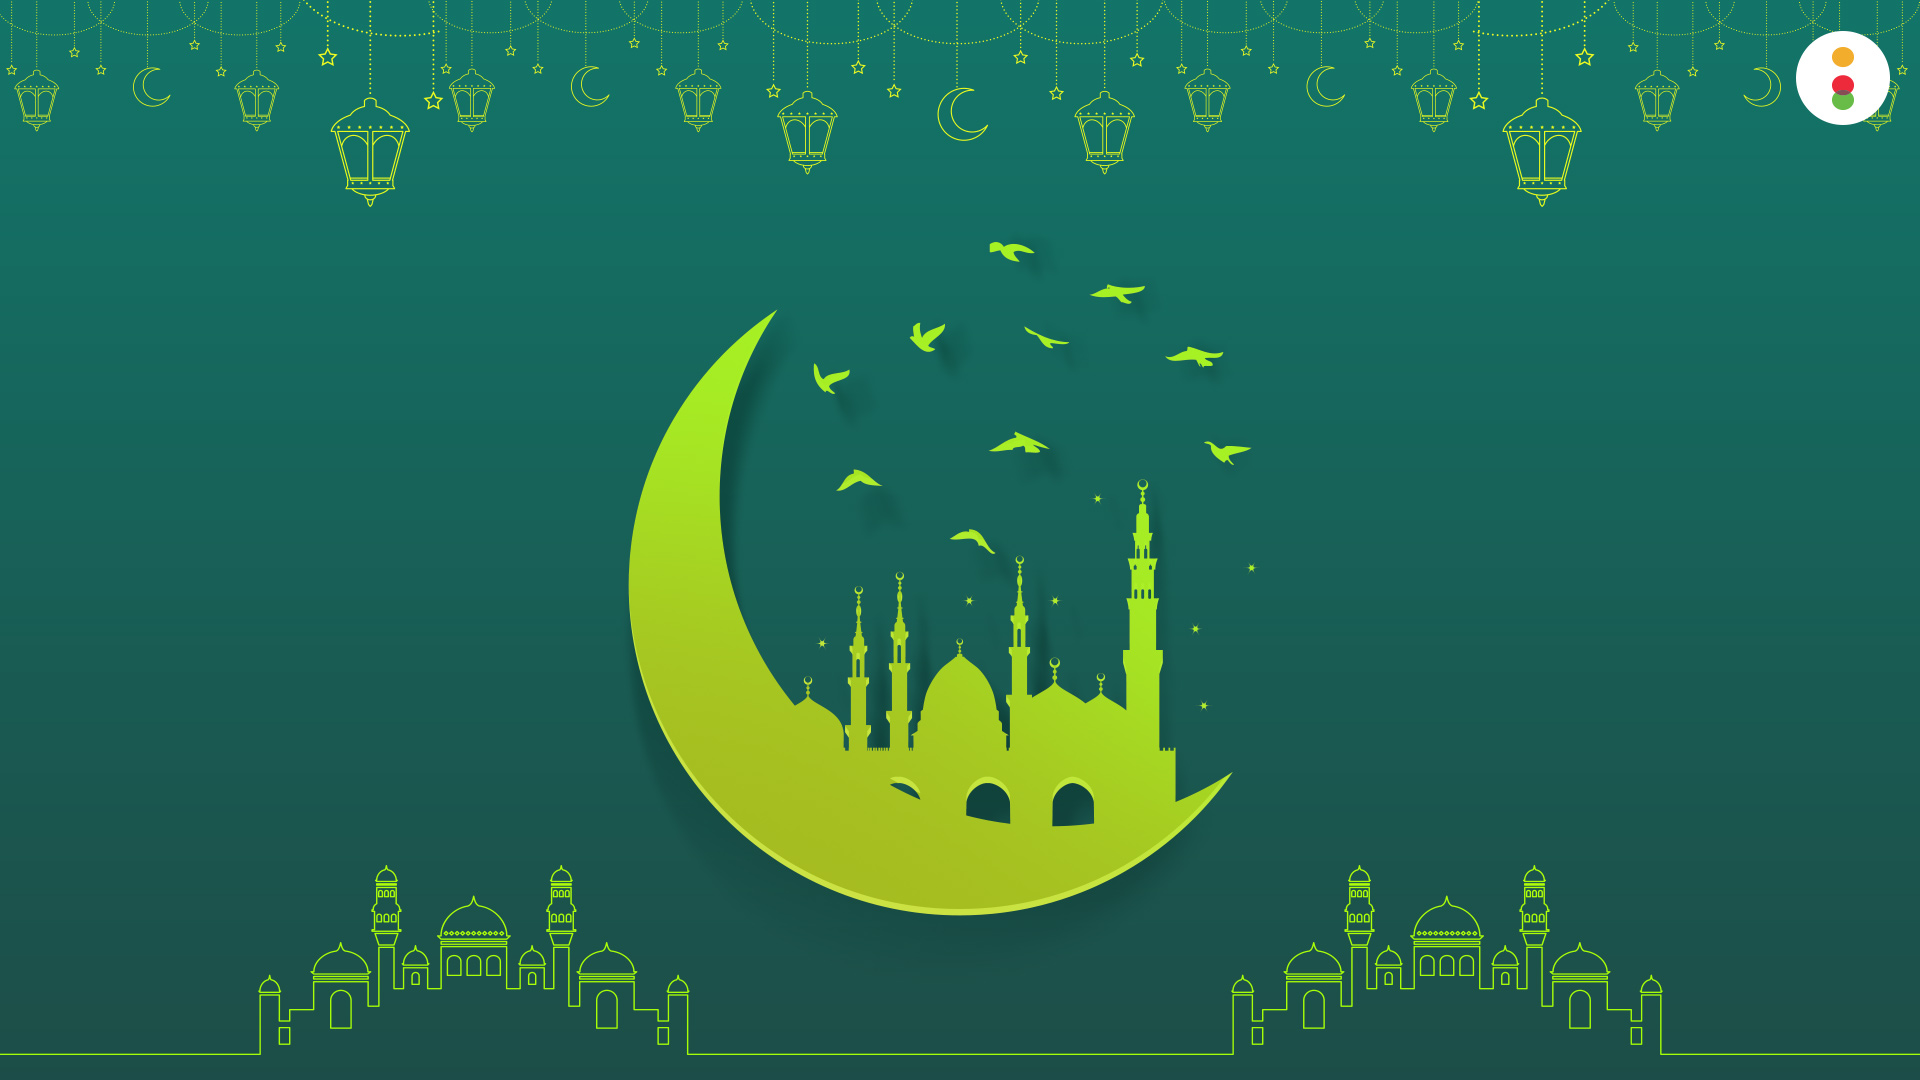 elevenia - Ramadan Wallpaper - Desktop - 2